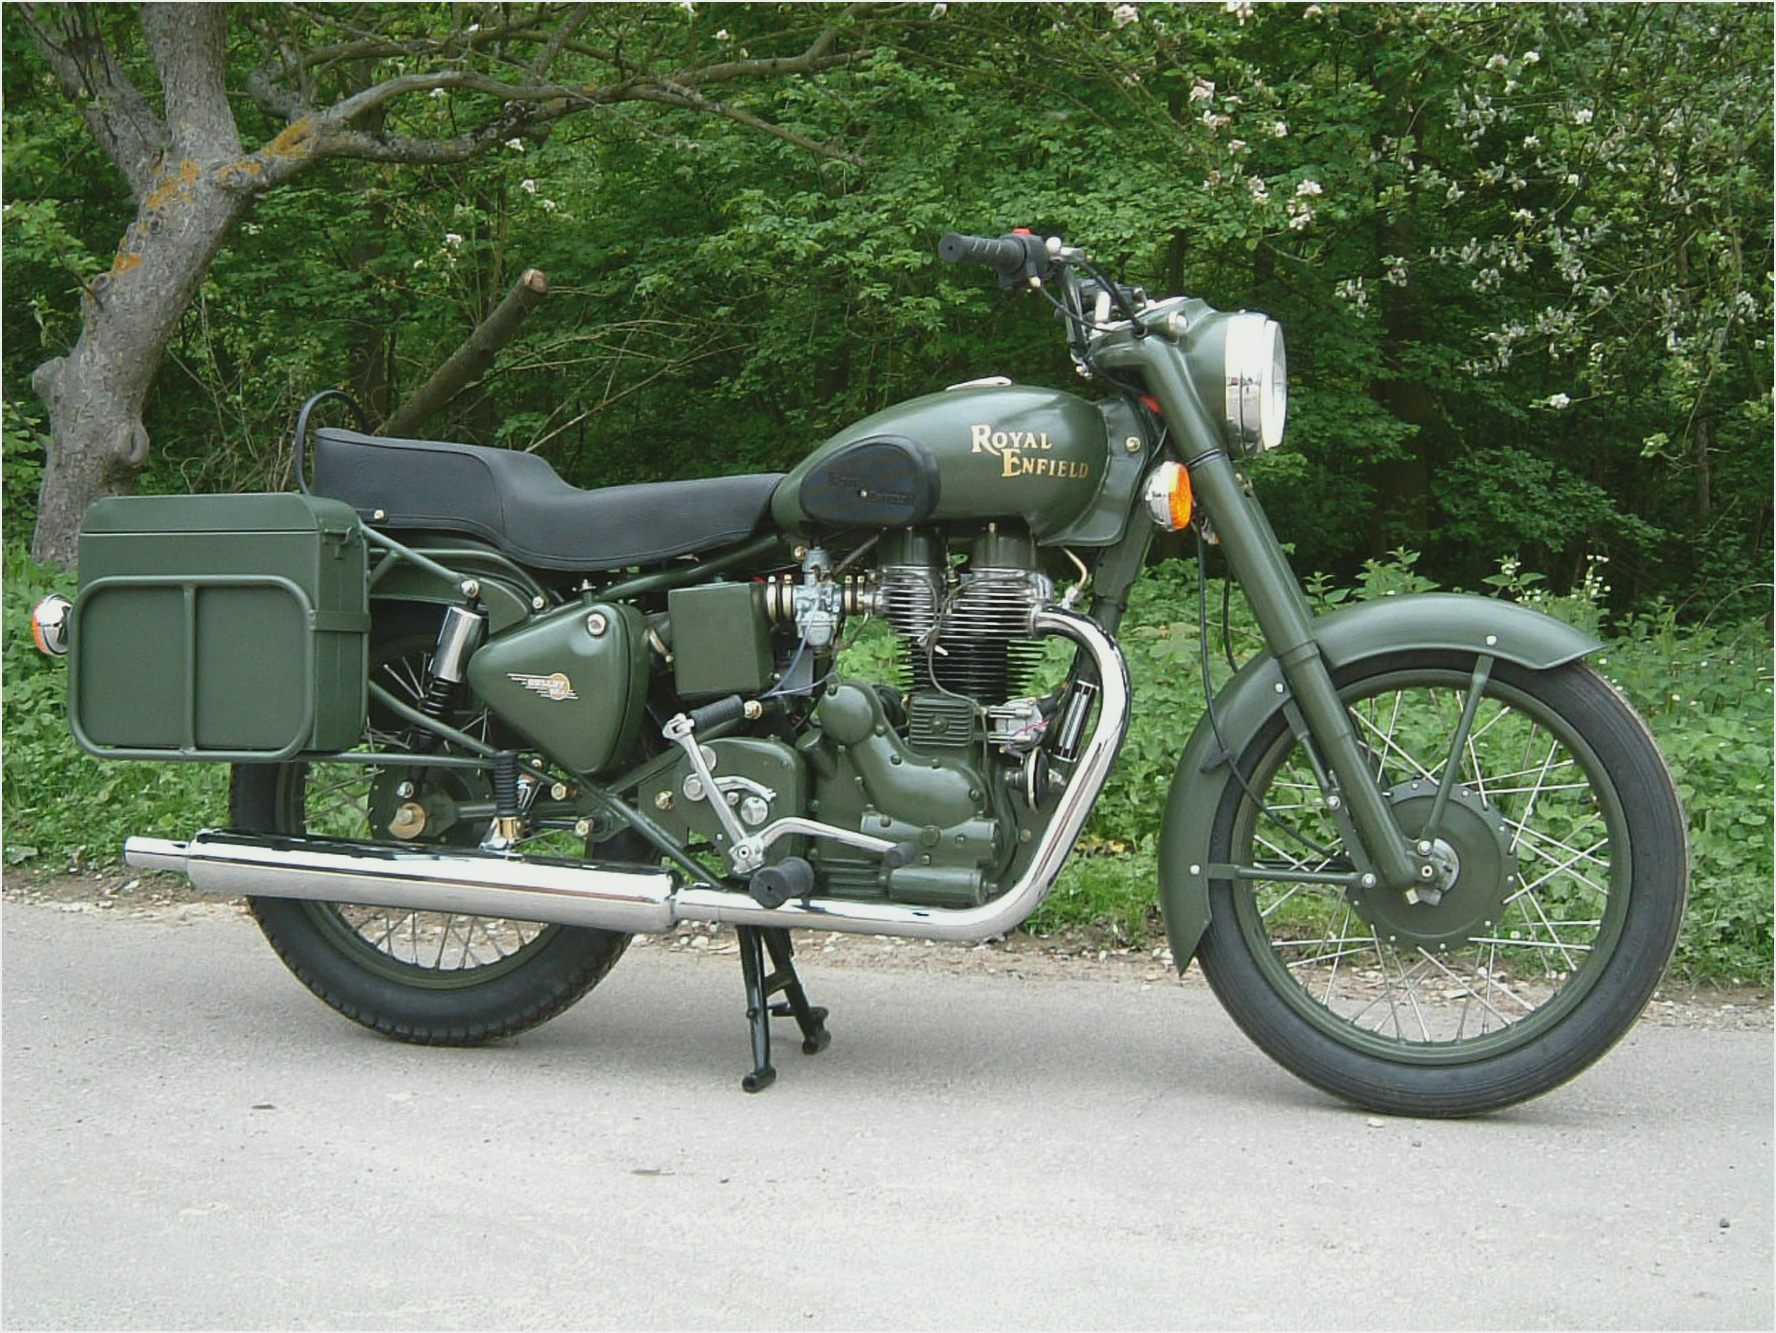 Royal Enfield Bullet 350 Army 1987 images #122427